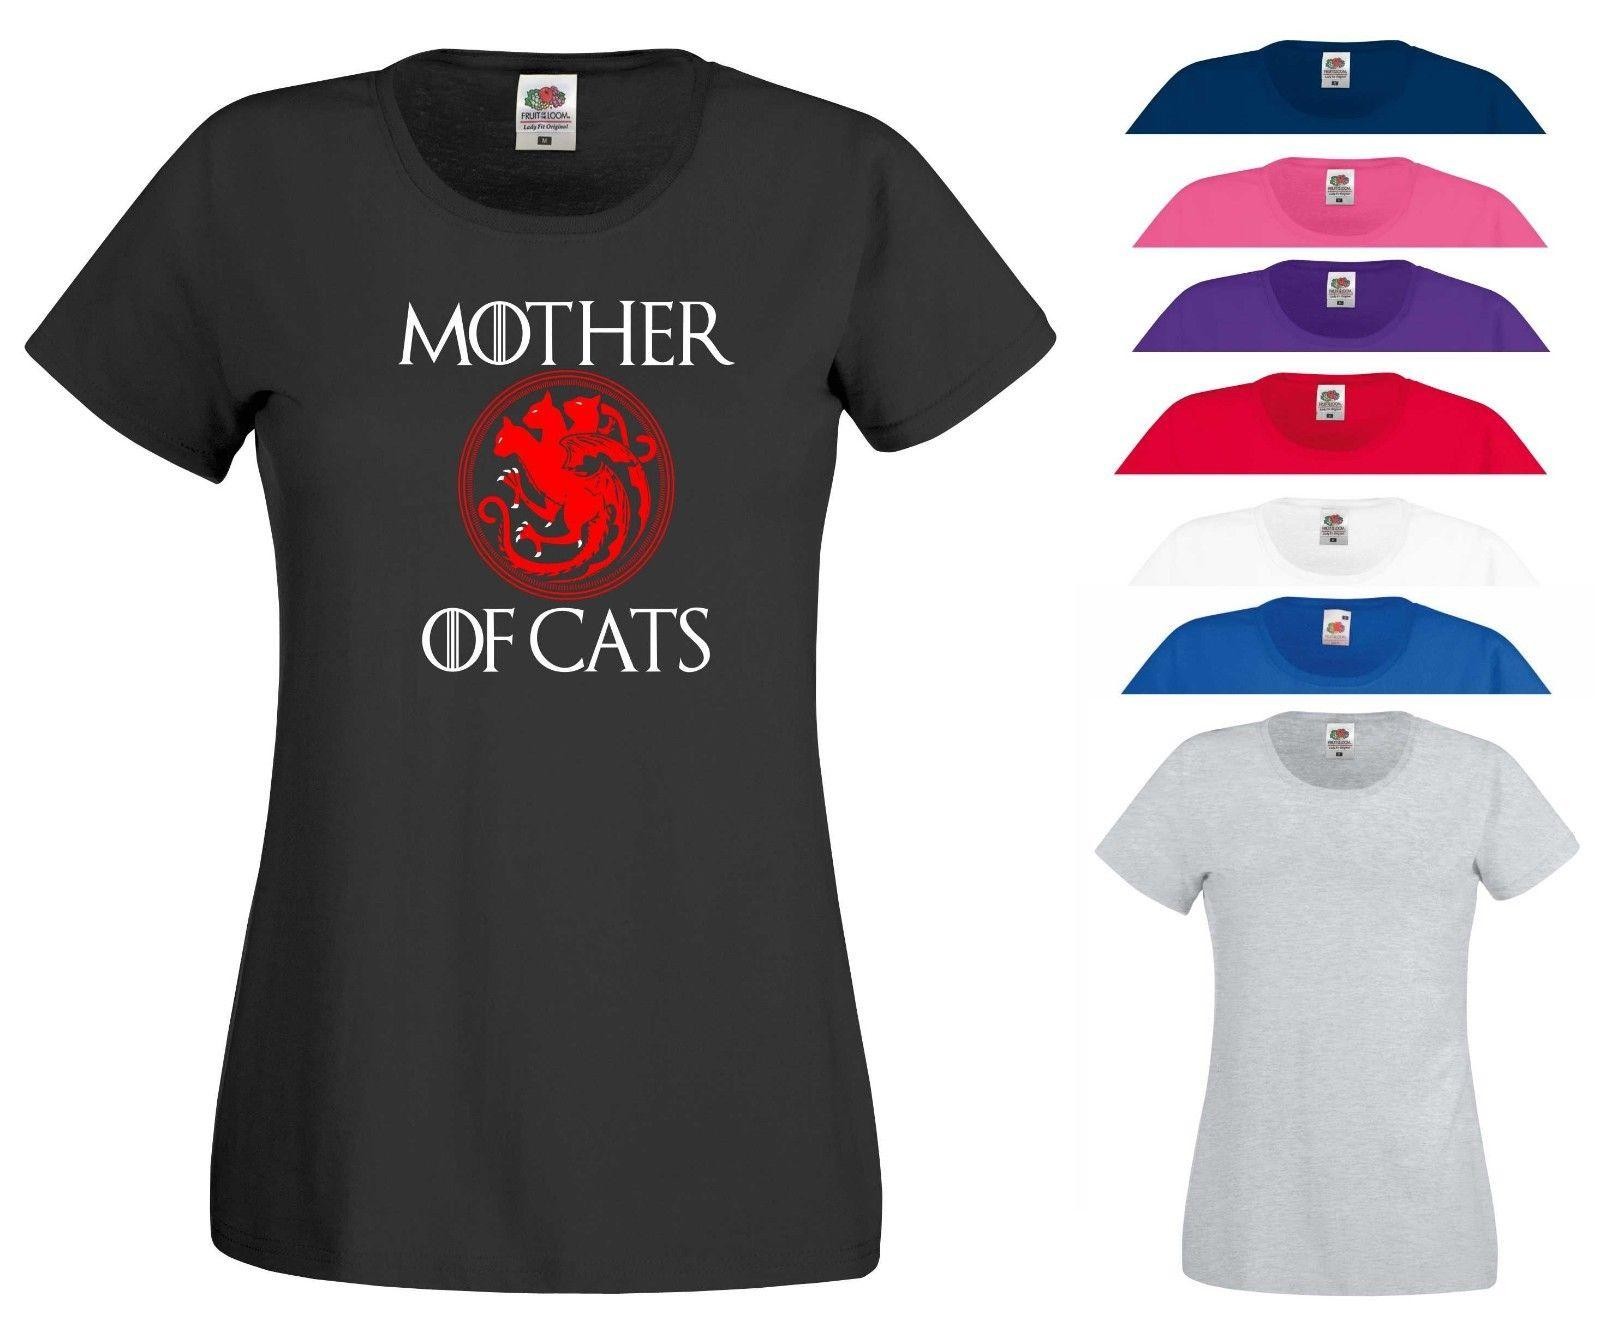 Mother Of Cats T Shirt Cat Lovers Game Thrones Birthday MotherS Day Gift Top Men Women Unisex Fashion Tshirt Black Funky Design Every